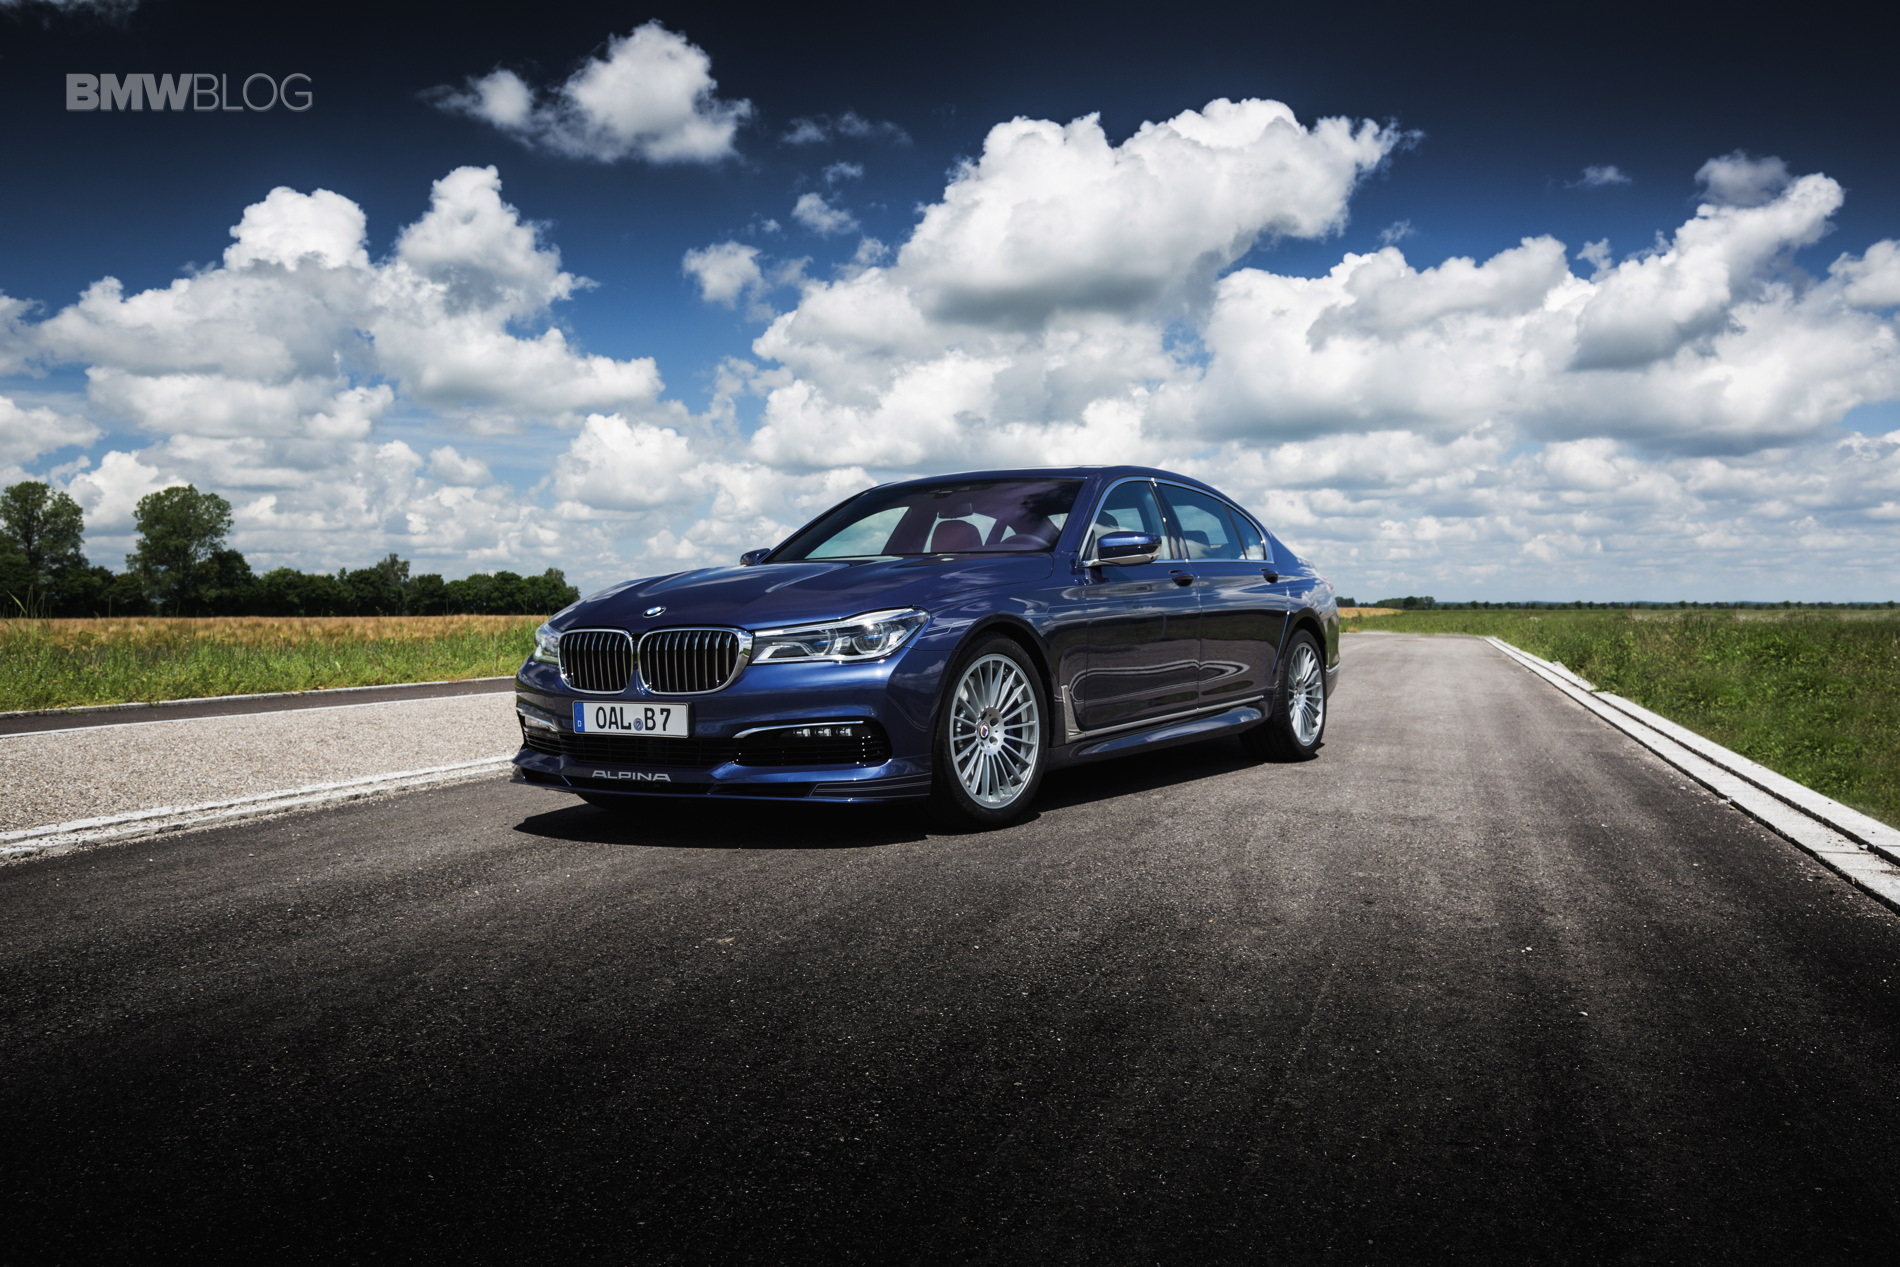 2017 ALPINA B7 Biturbo images 19